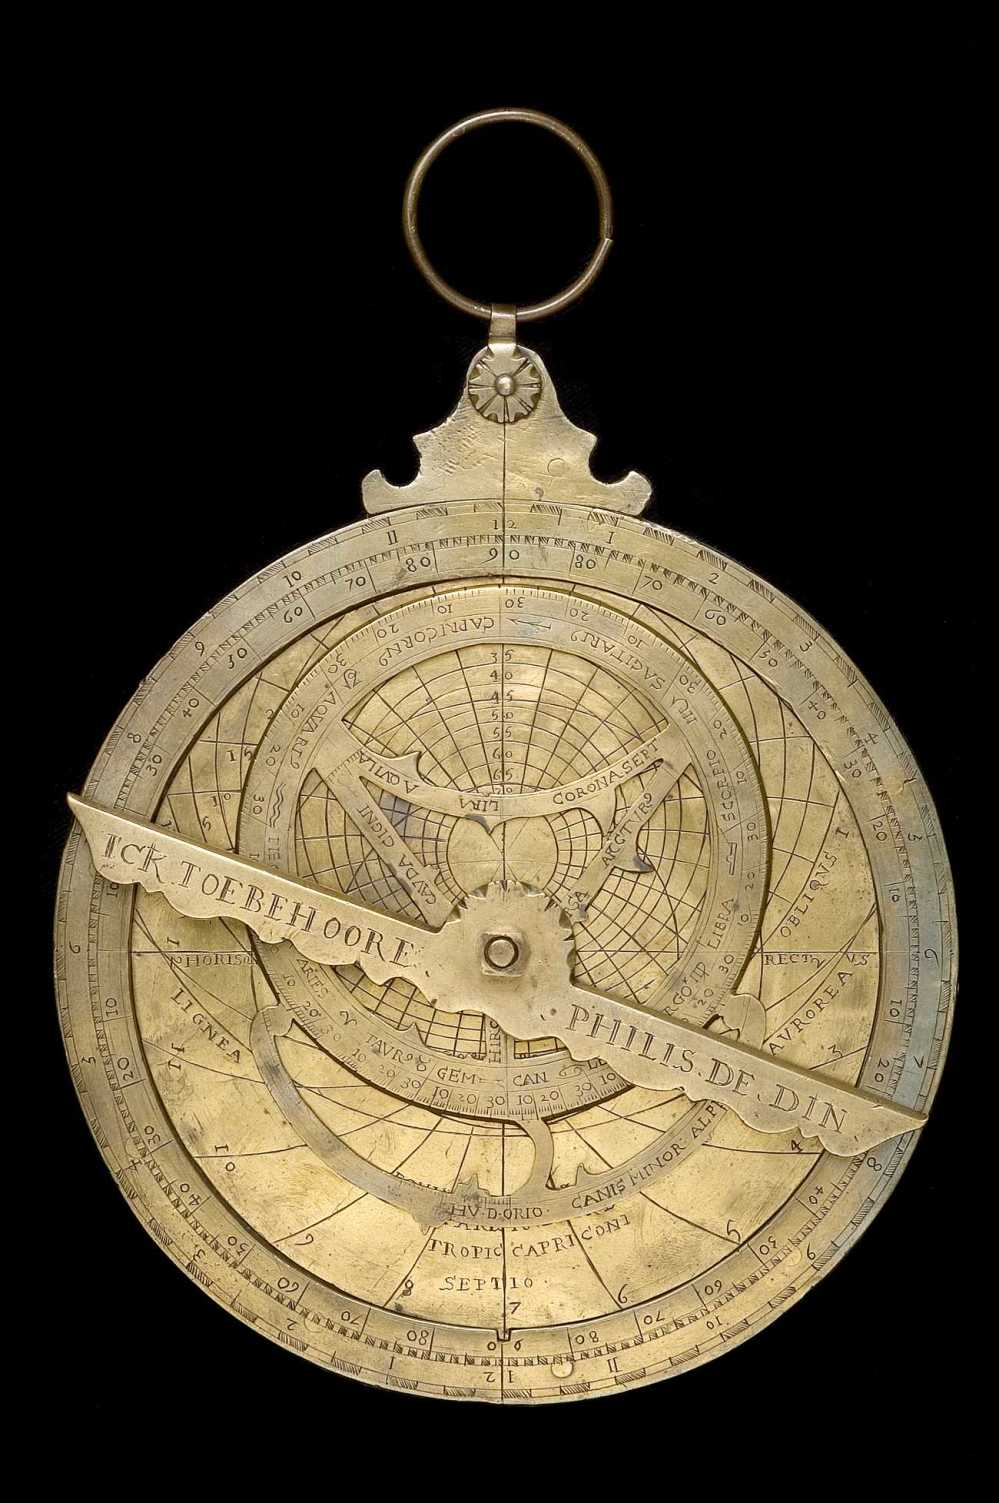 preview image for Astrolabe of Philis de Din, French?, 1595